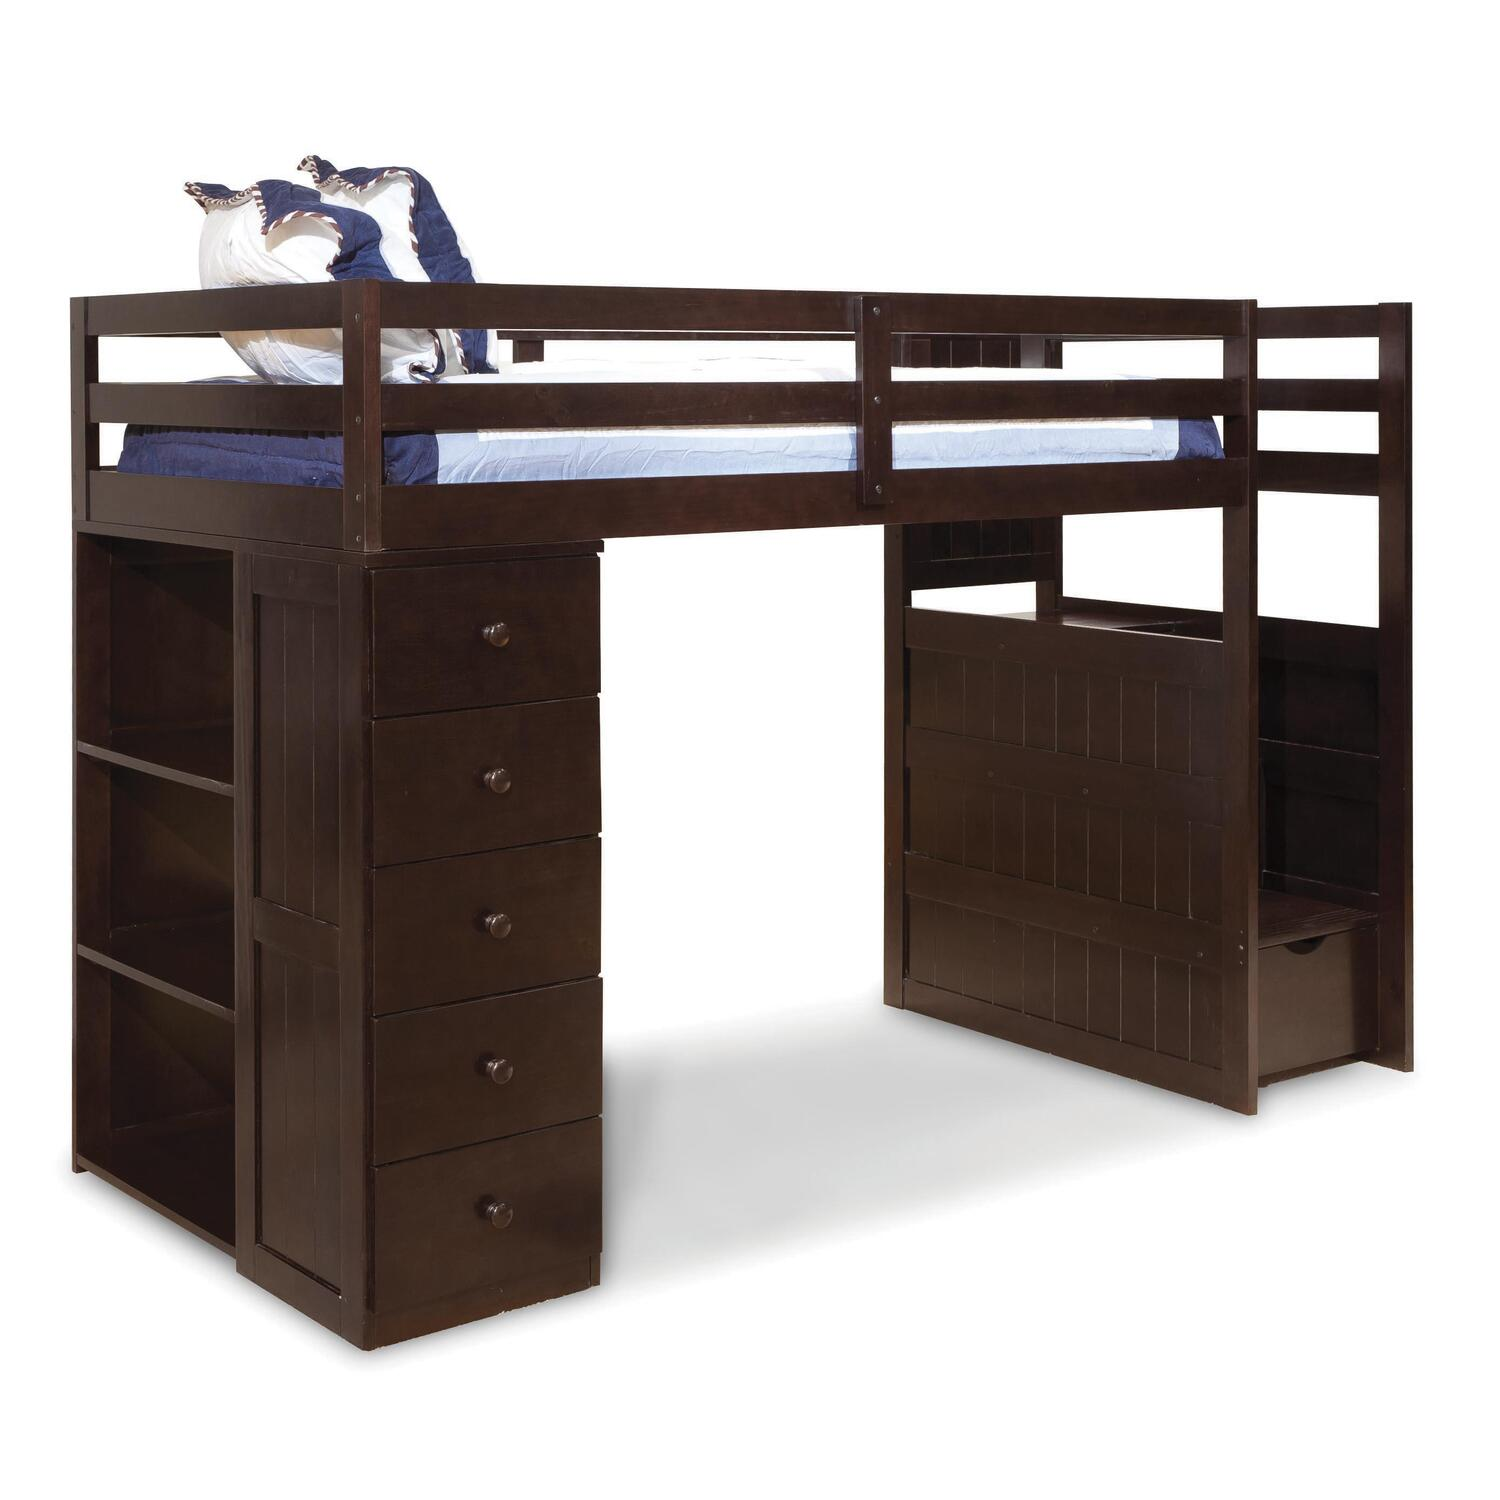 Canwood Mountaineer Twin Loft Bed With Storage Tower And